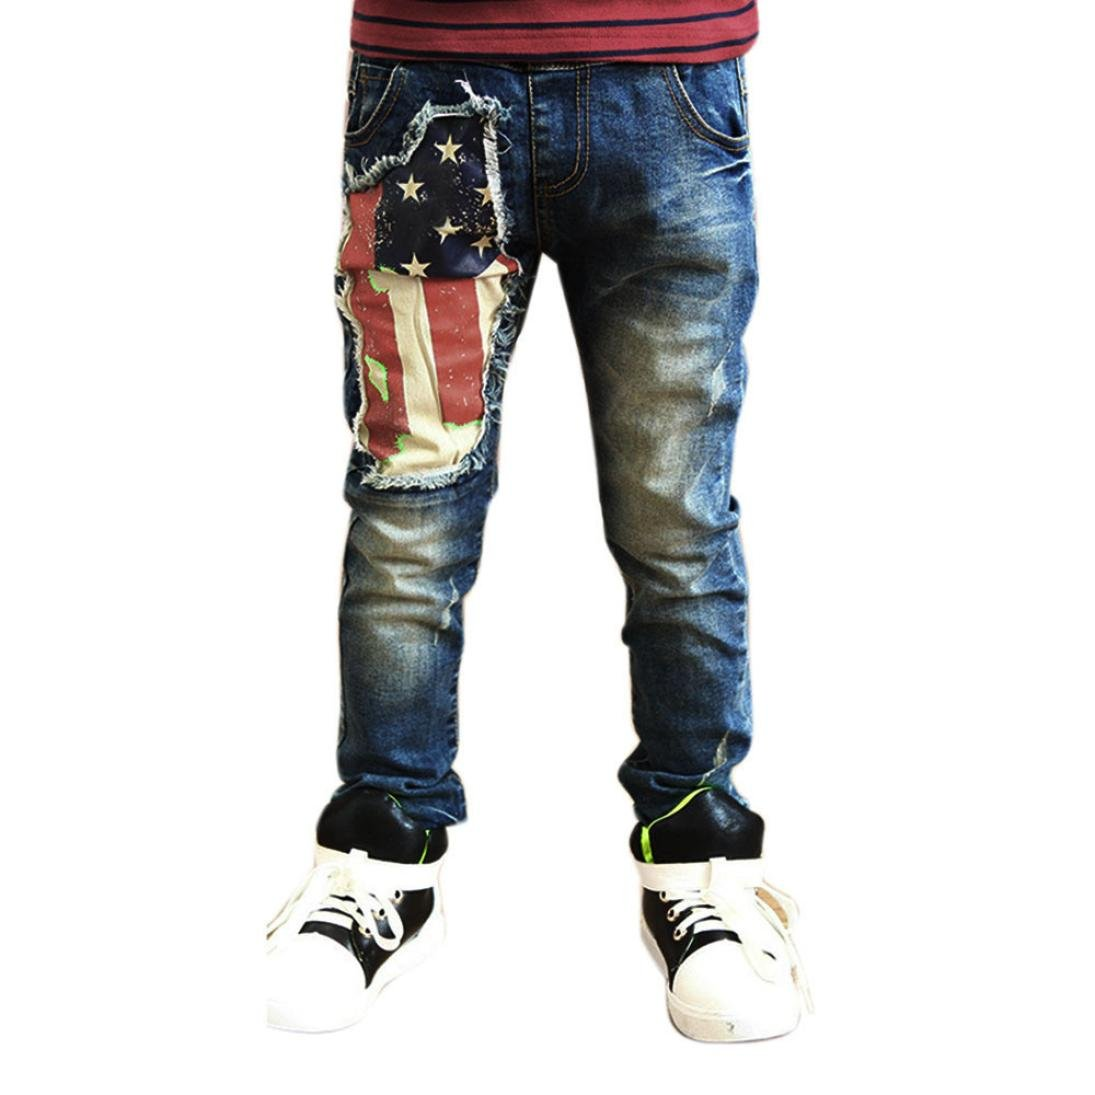 Clode® For 2-7 Years Old Boys, Baby Kids Boys Printing Zipper Stretch Jeans Pants Elastic Waist Denim Trousers Clode-Boys Clothing -T02